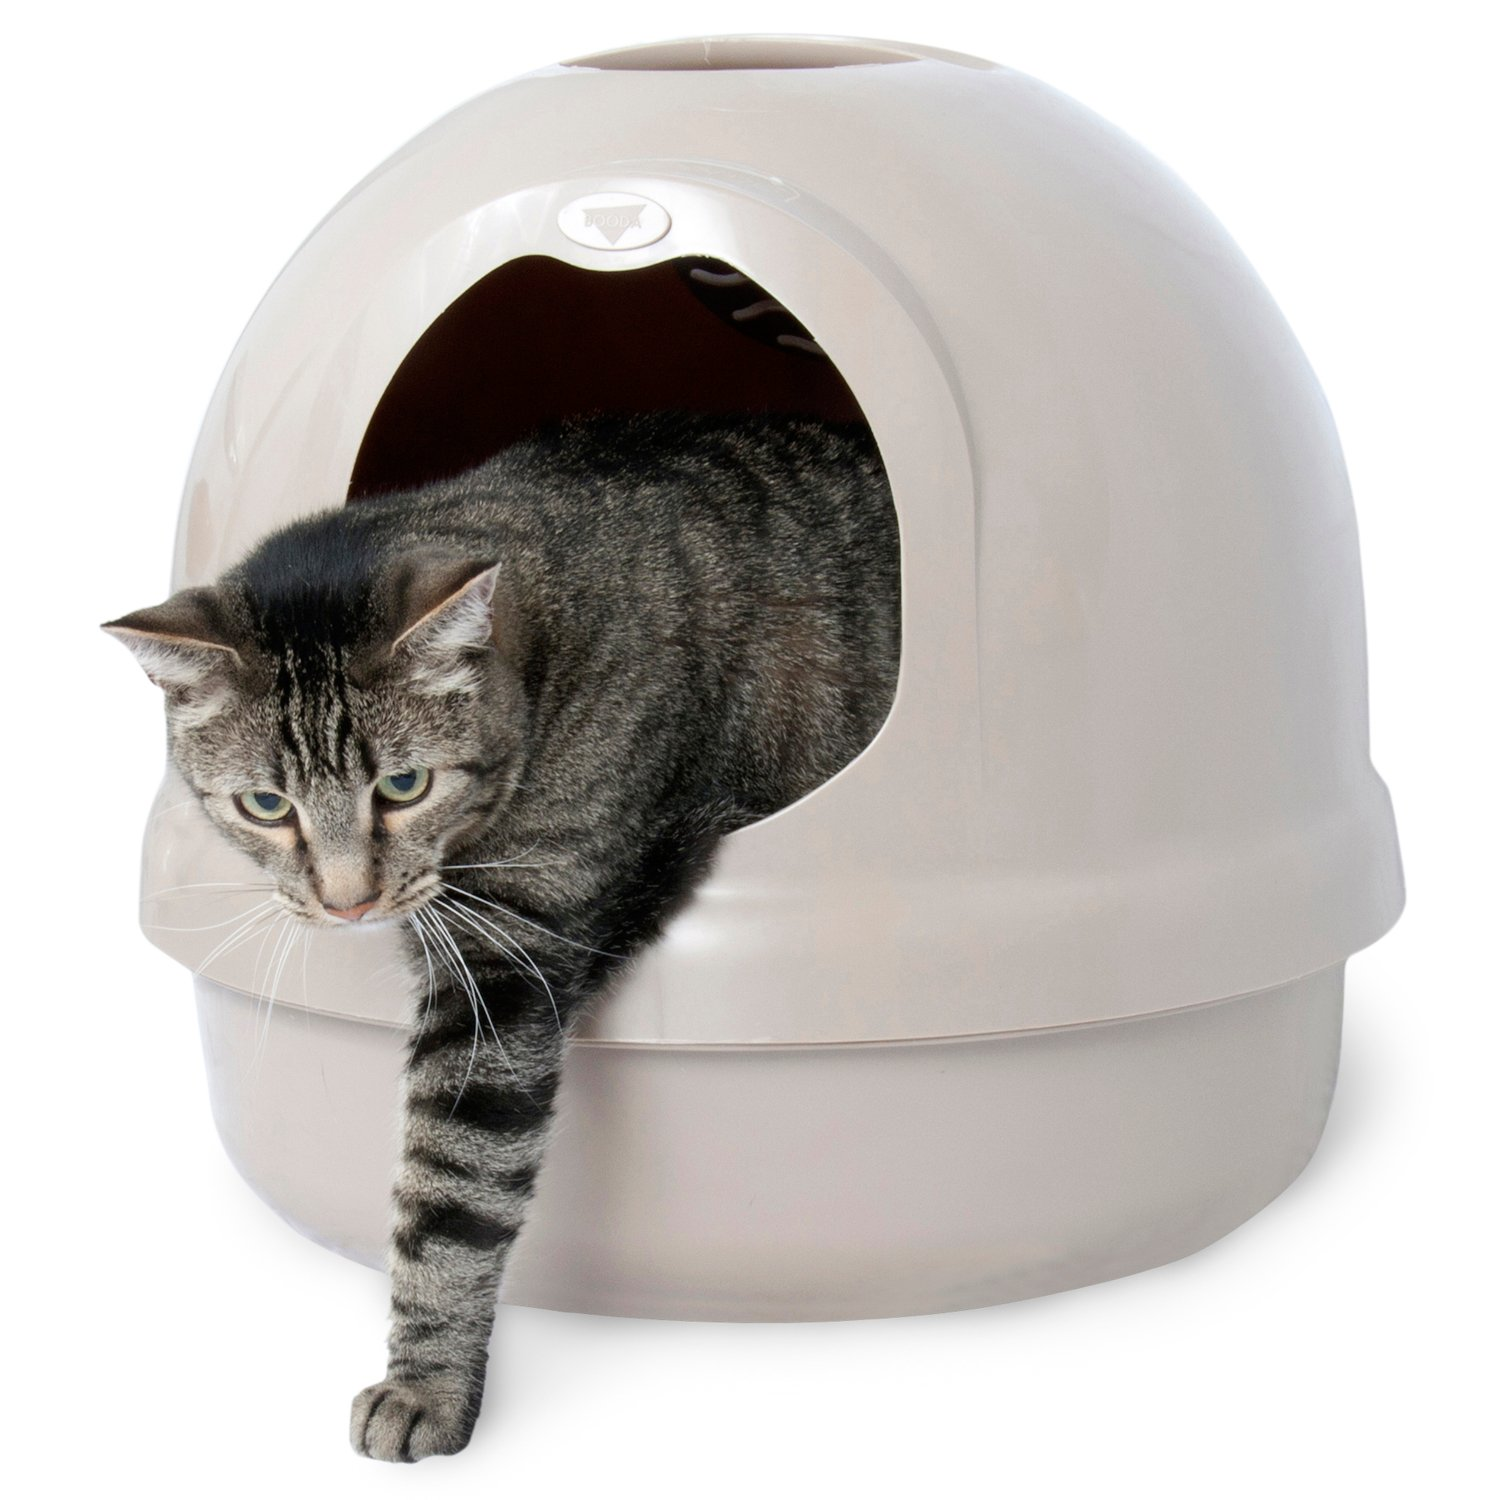 Booda Dome Covered Litter Box in Titanium